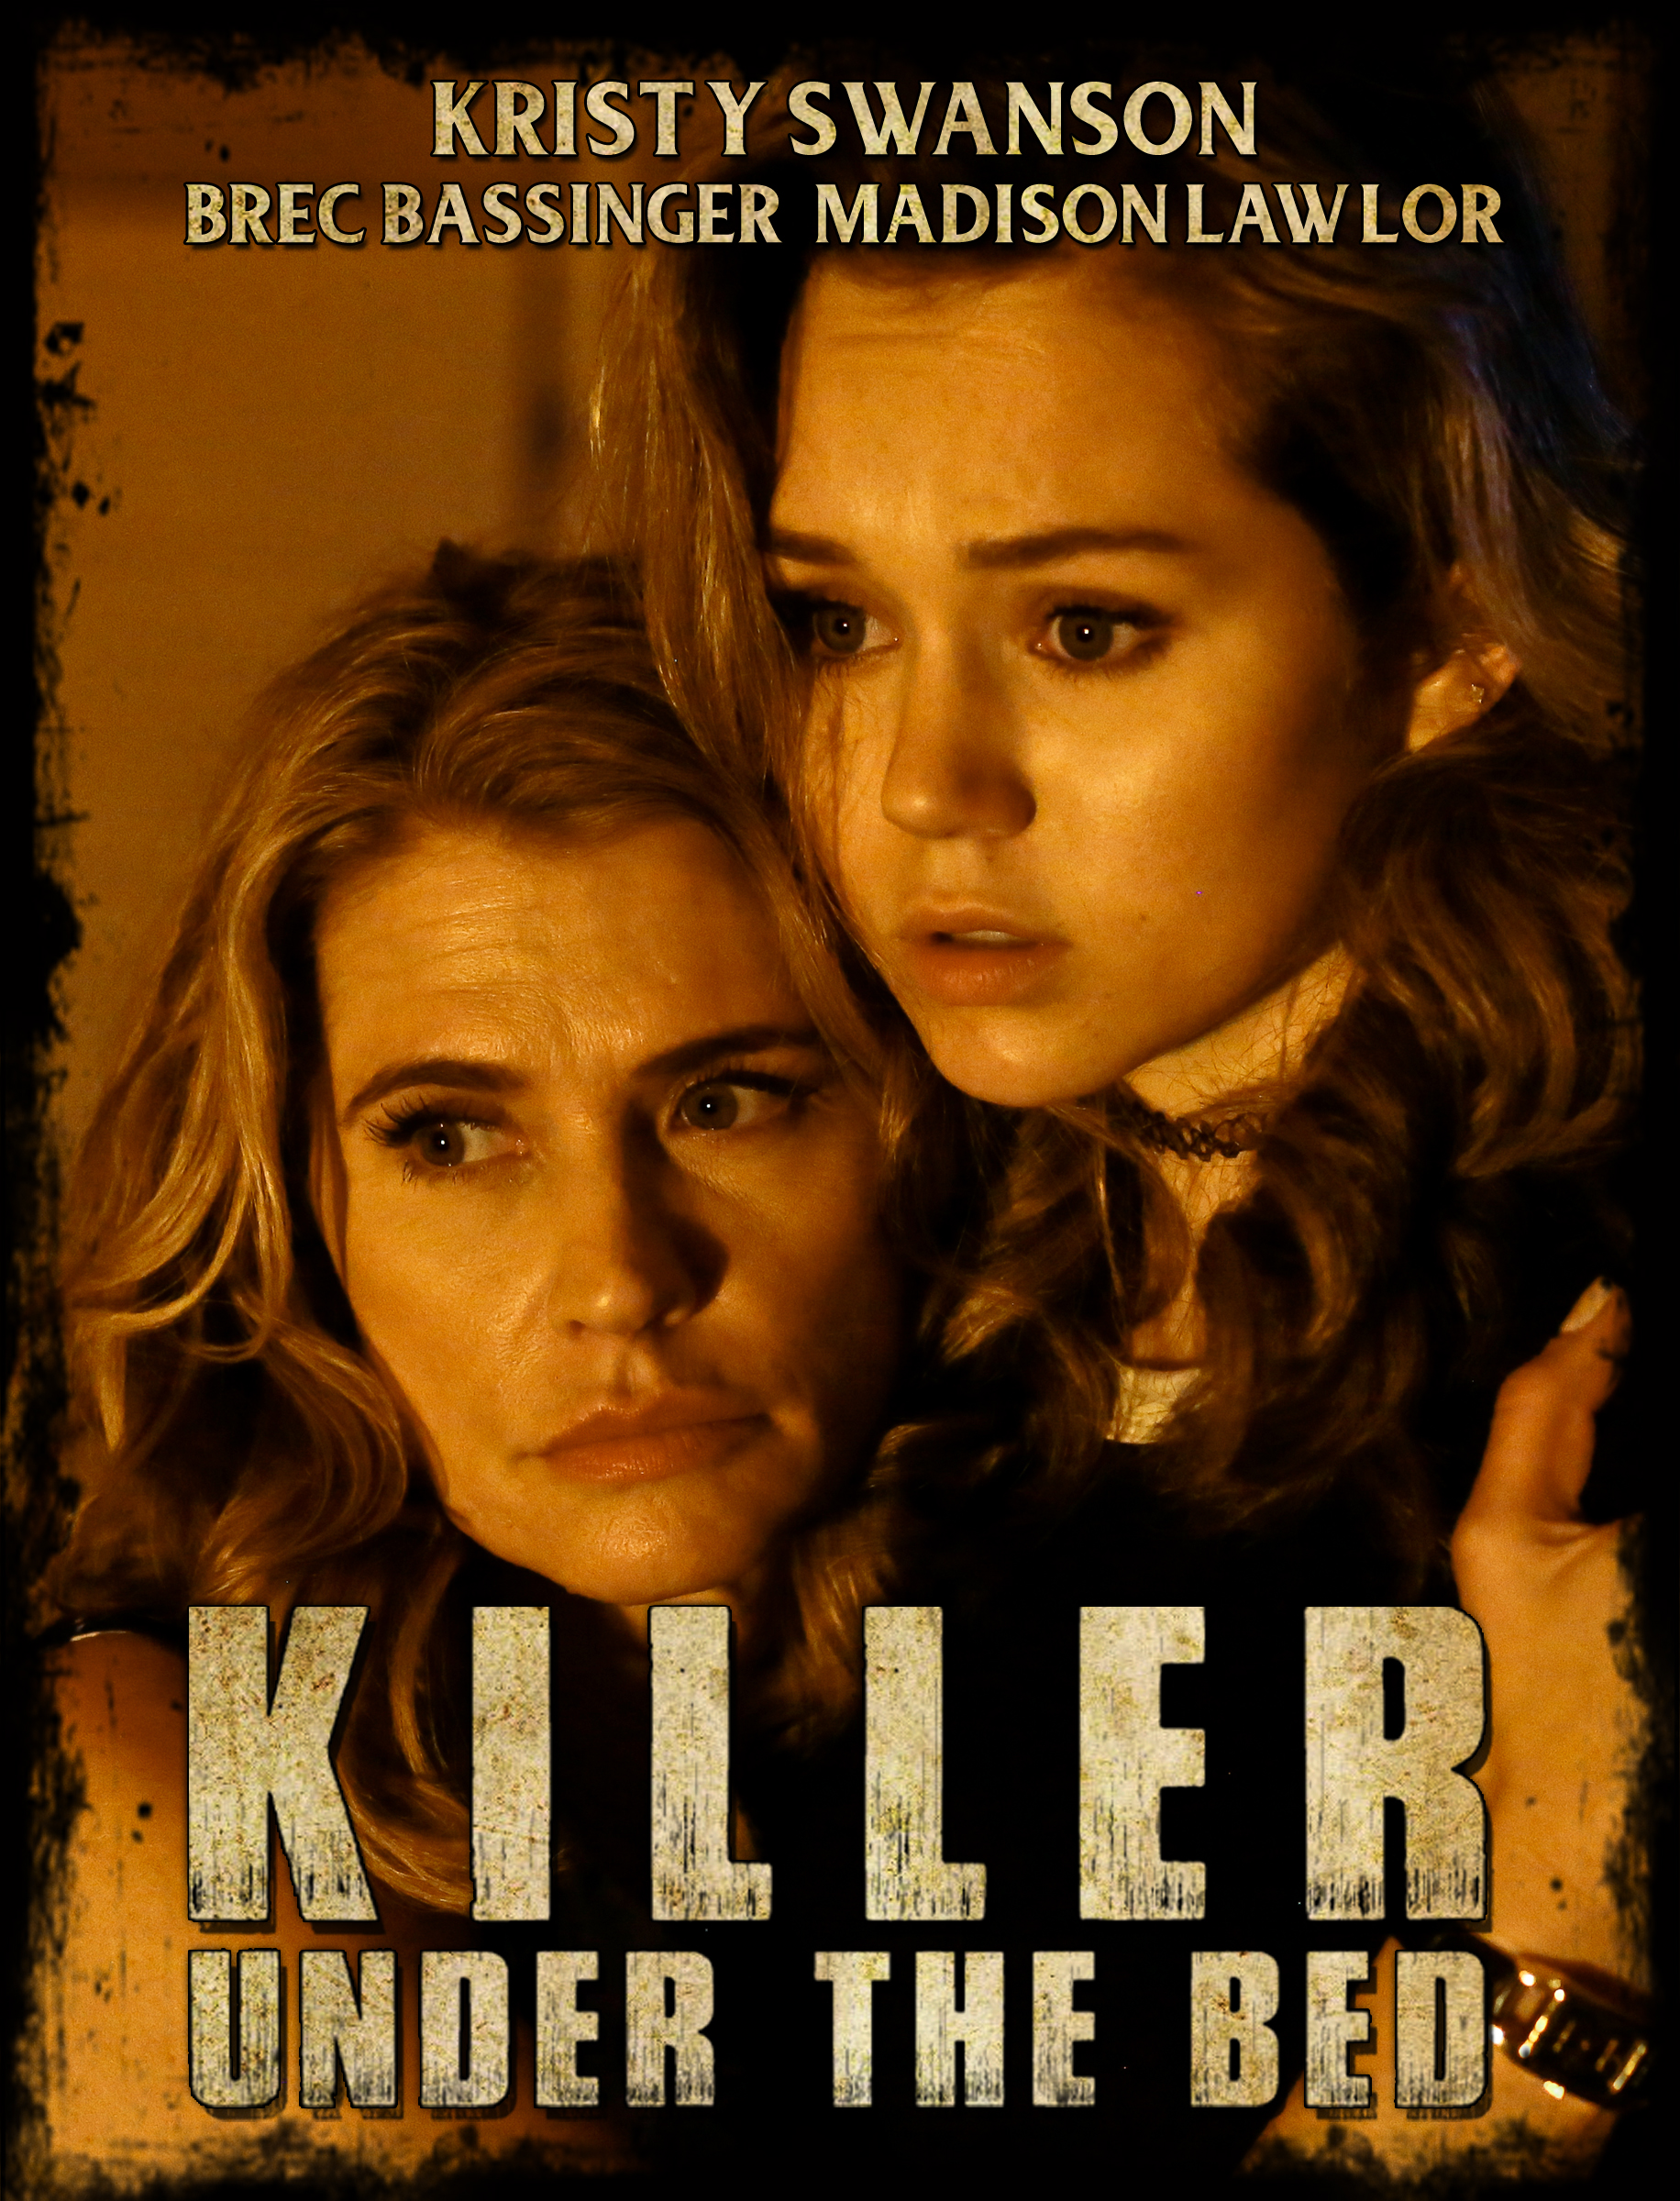 Image result for killer under the bed movie poster